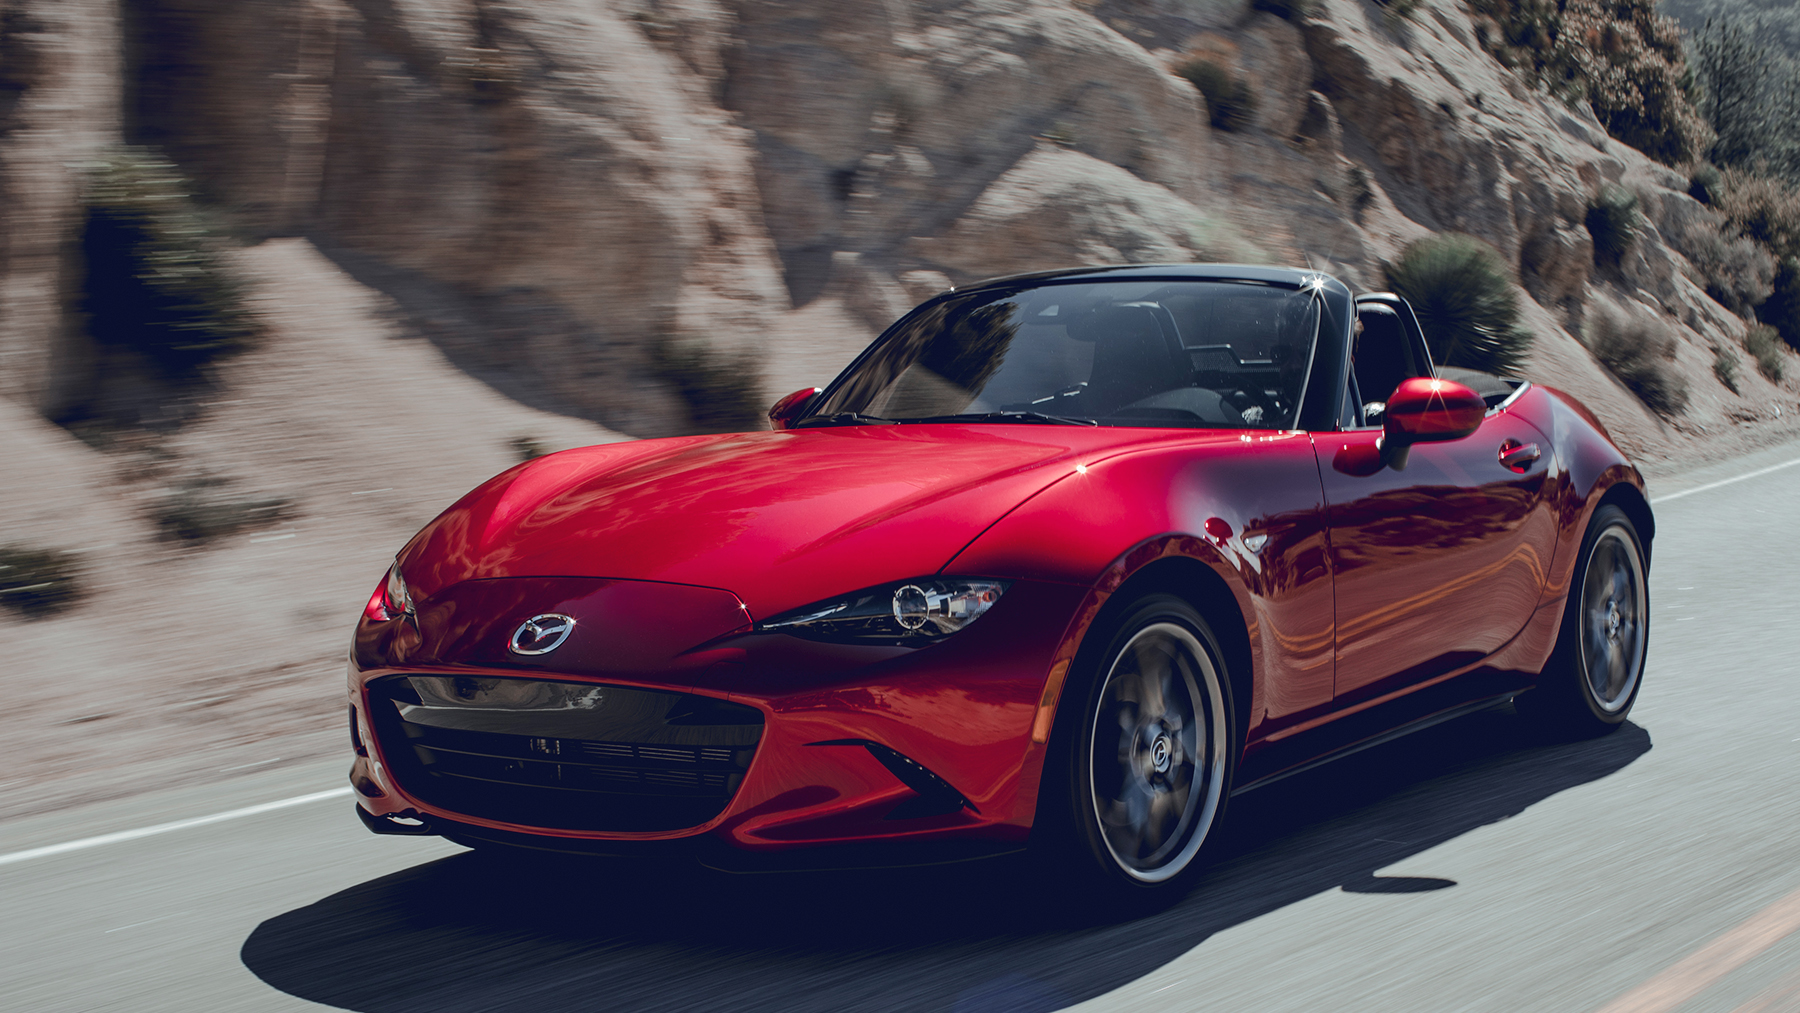 2019 Mazda MX-5 Miata for Sale near Phoenix, AZ